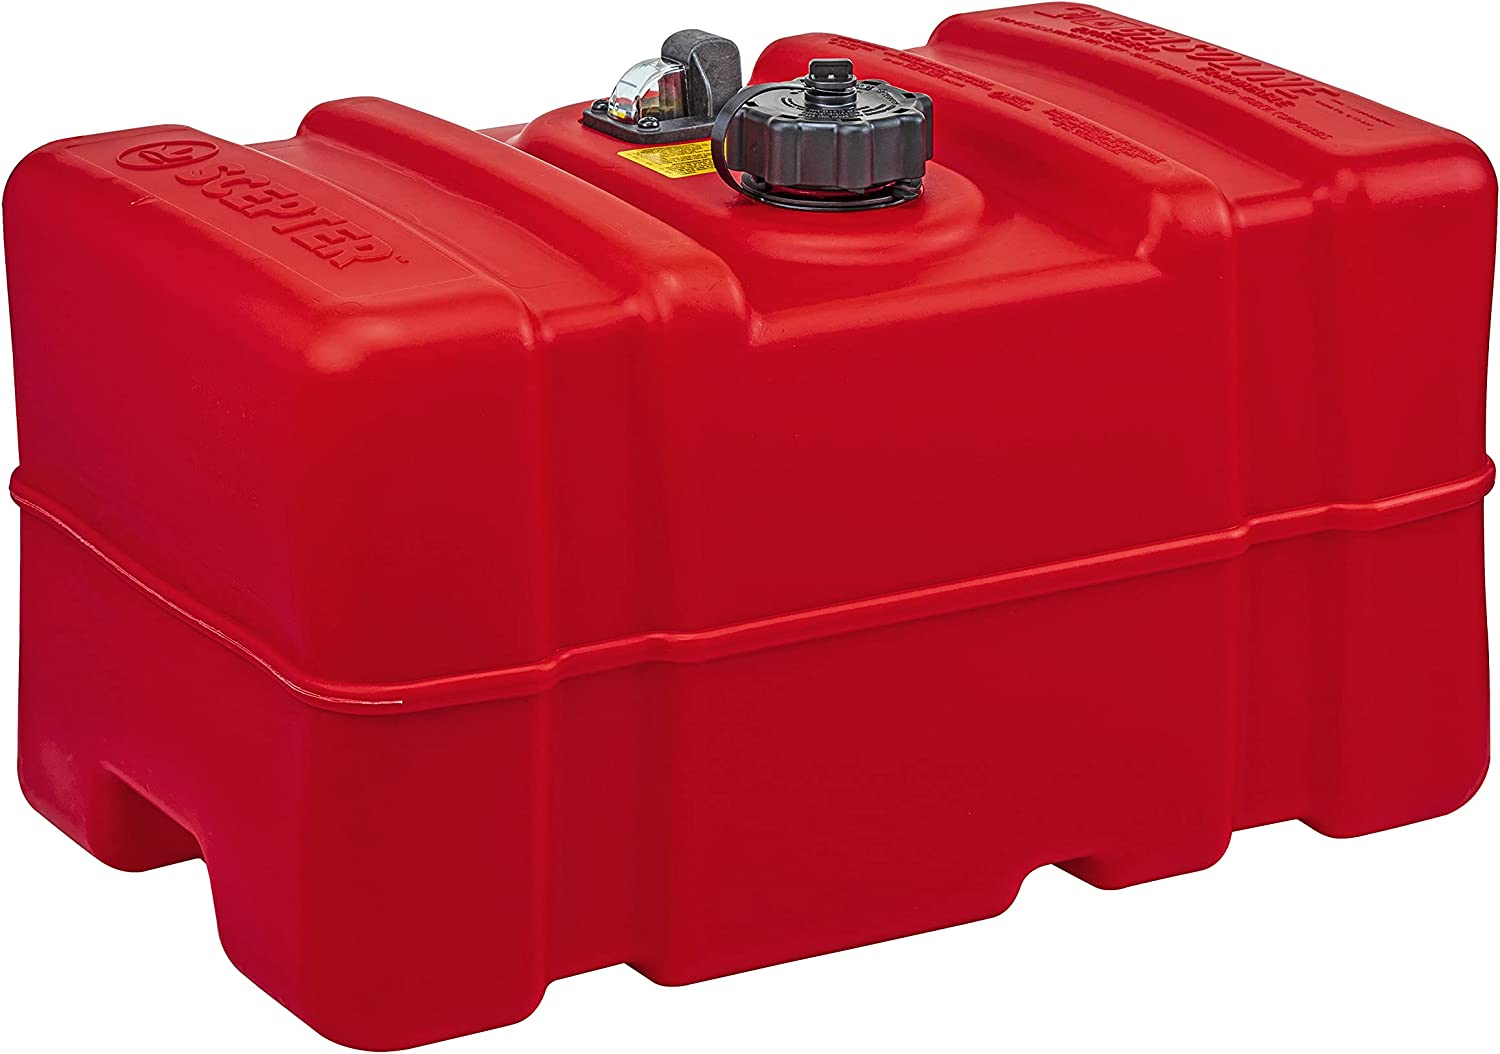 Challenge the lowest price of Japan Scepter Cheap mail order specialty store 12 Gallon Marine Fuel Tank 08668 Red